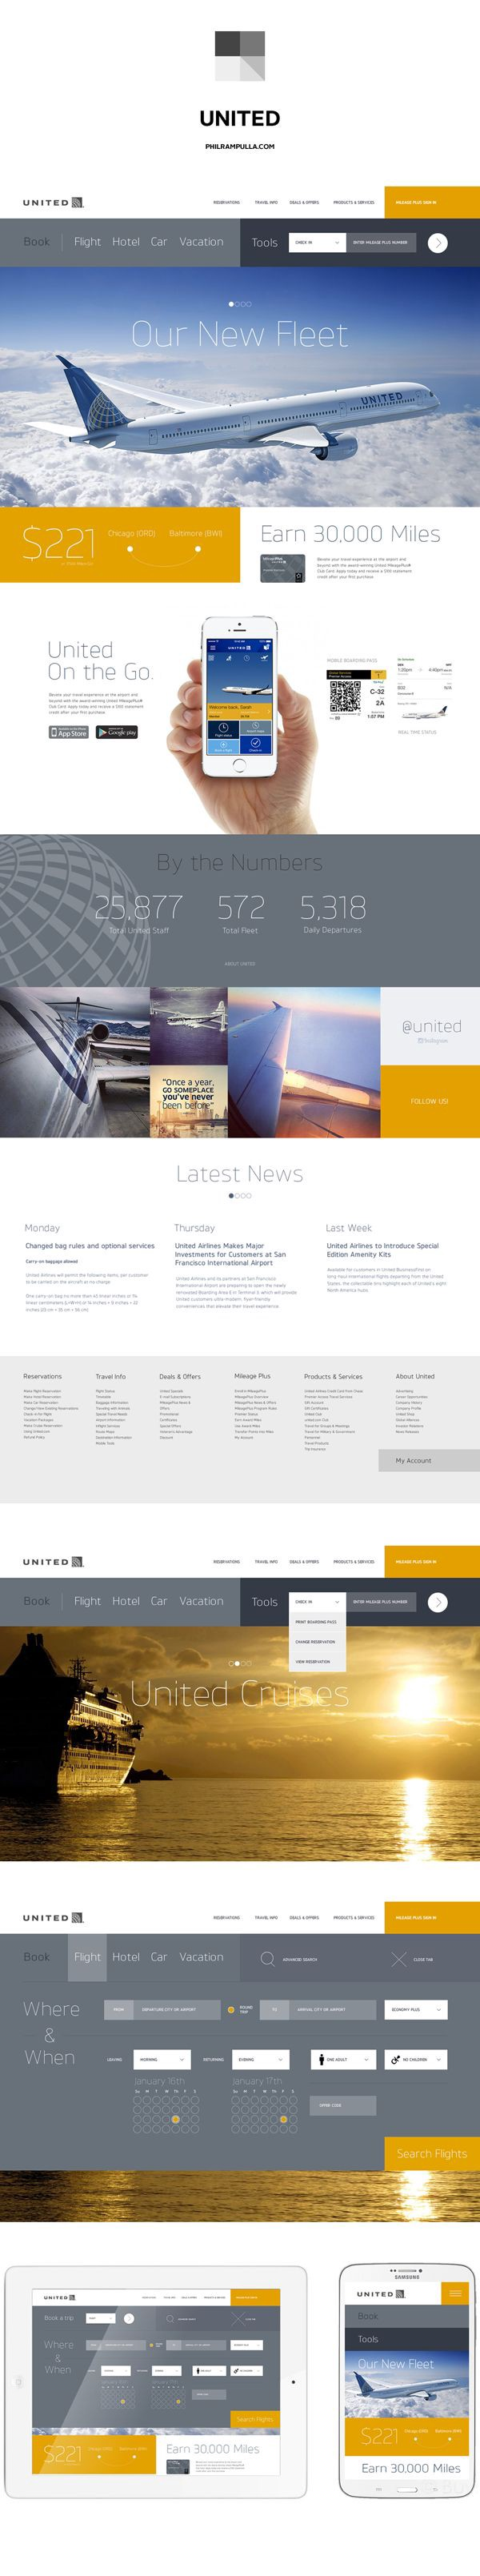 super popular 83bbe 8b26b United Airlines Website Redesign by Phil Rampulla